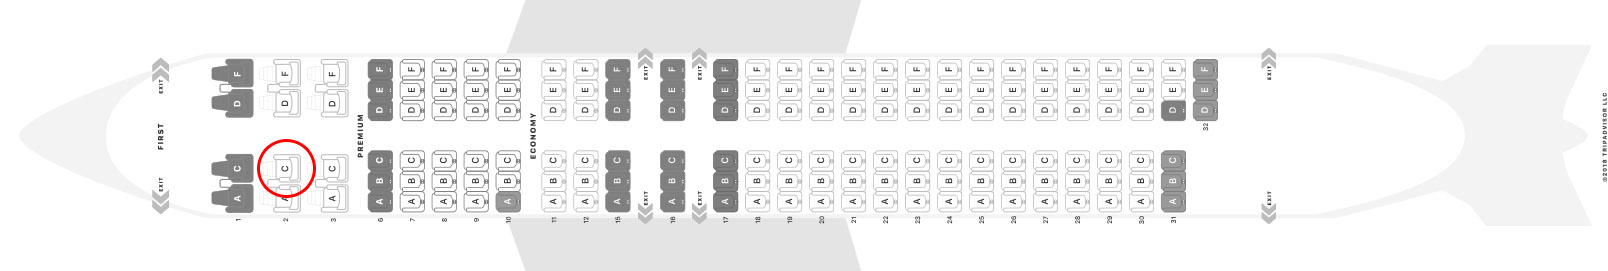 Alaska Airlines 737-800 seat map